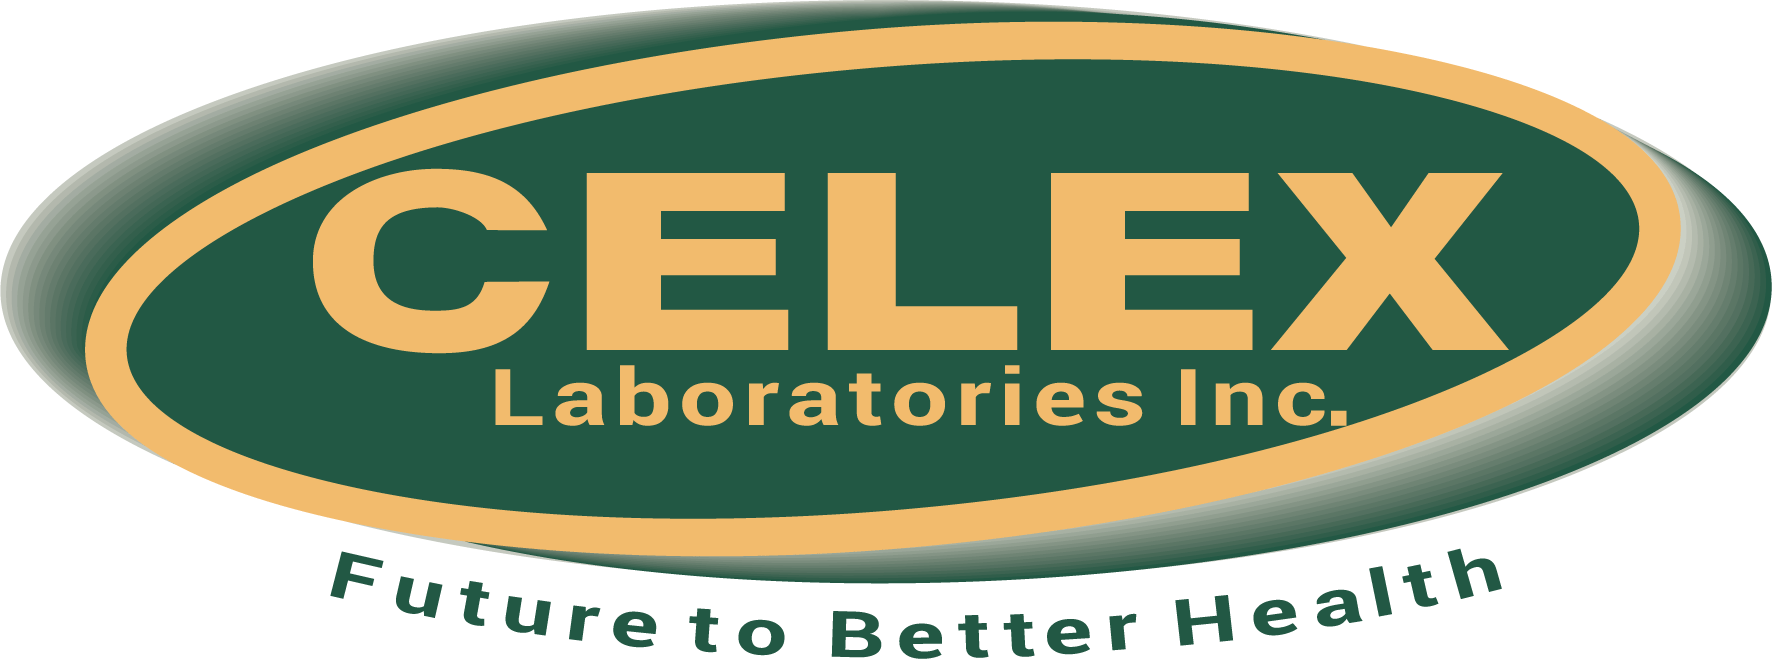 Celex Laboratories Inc.